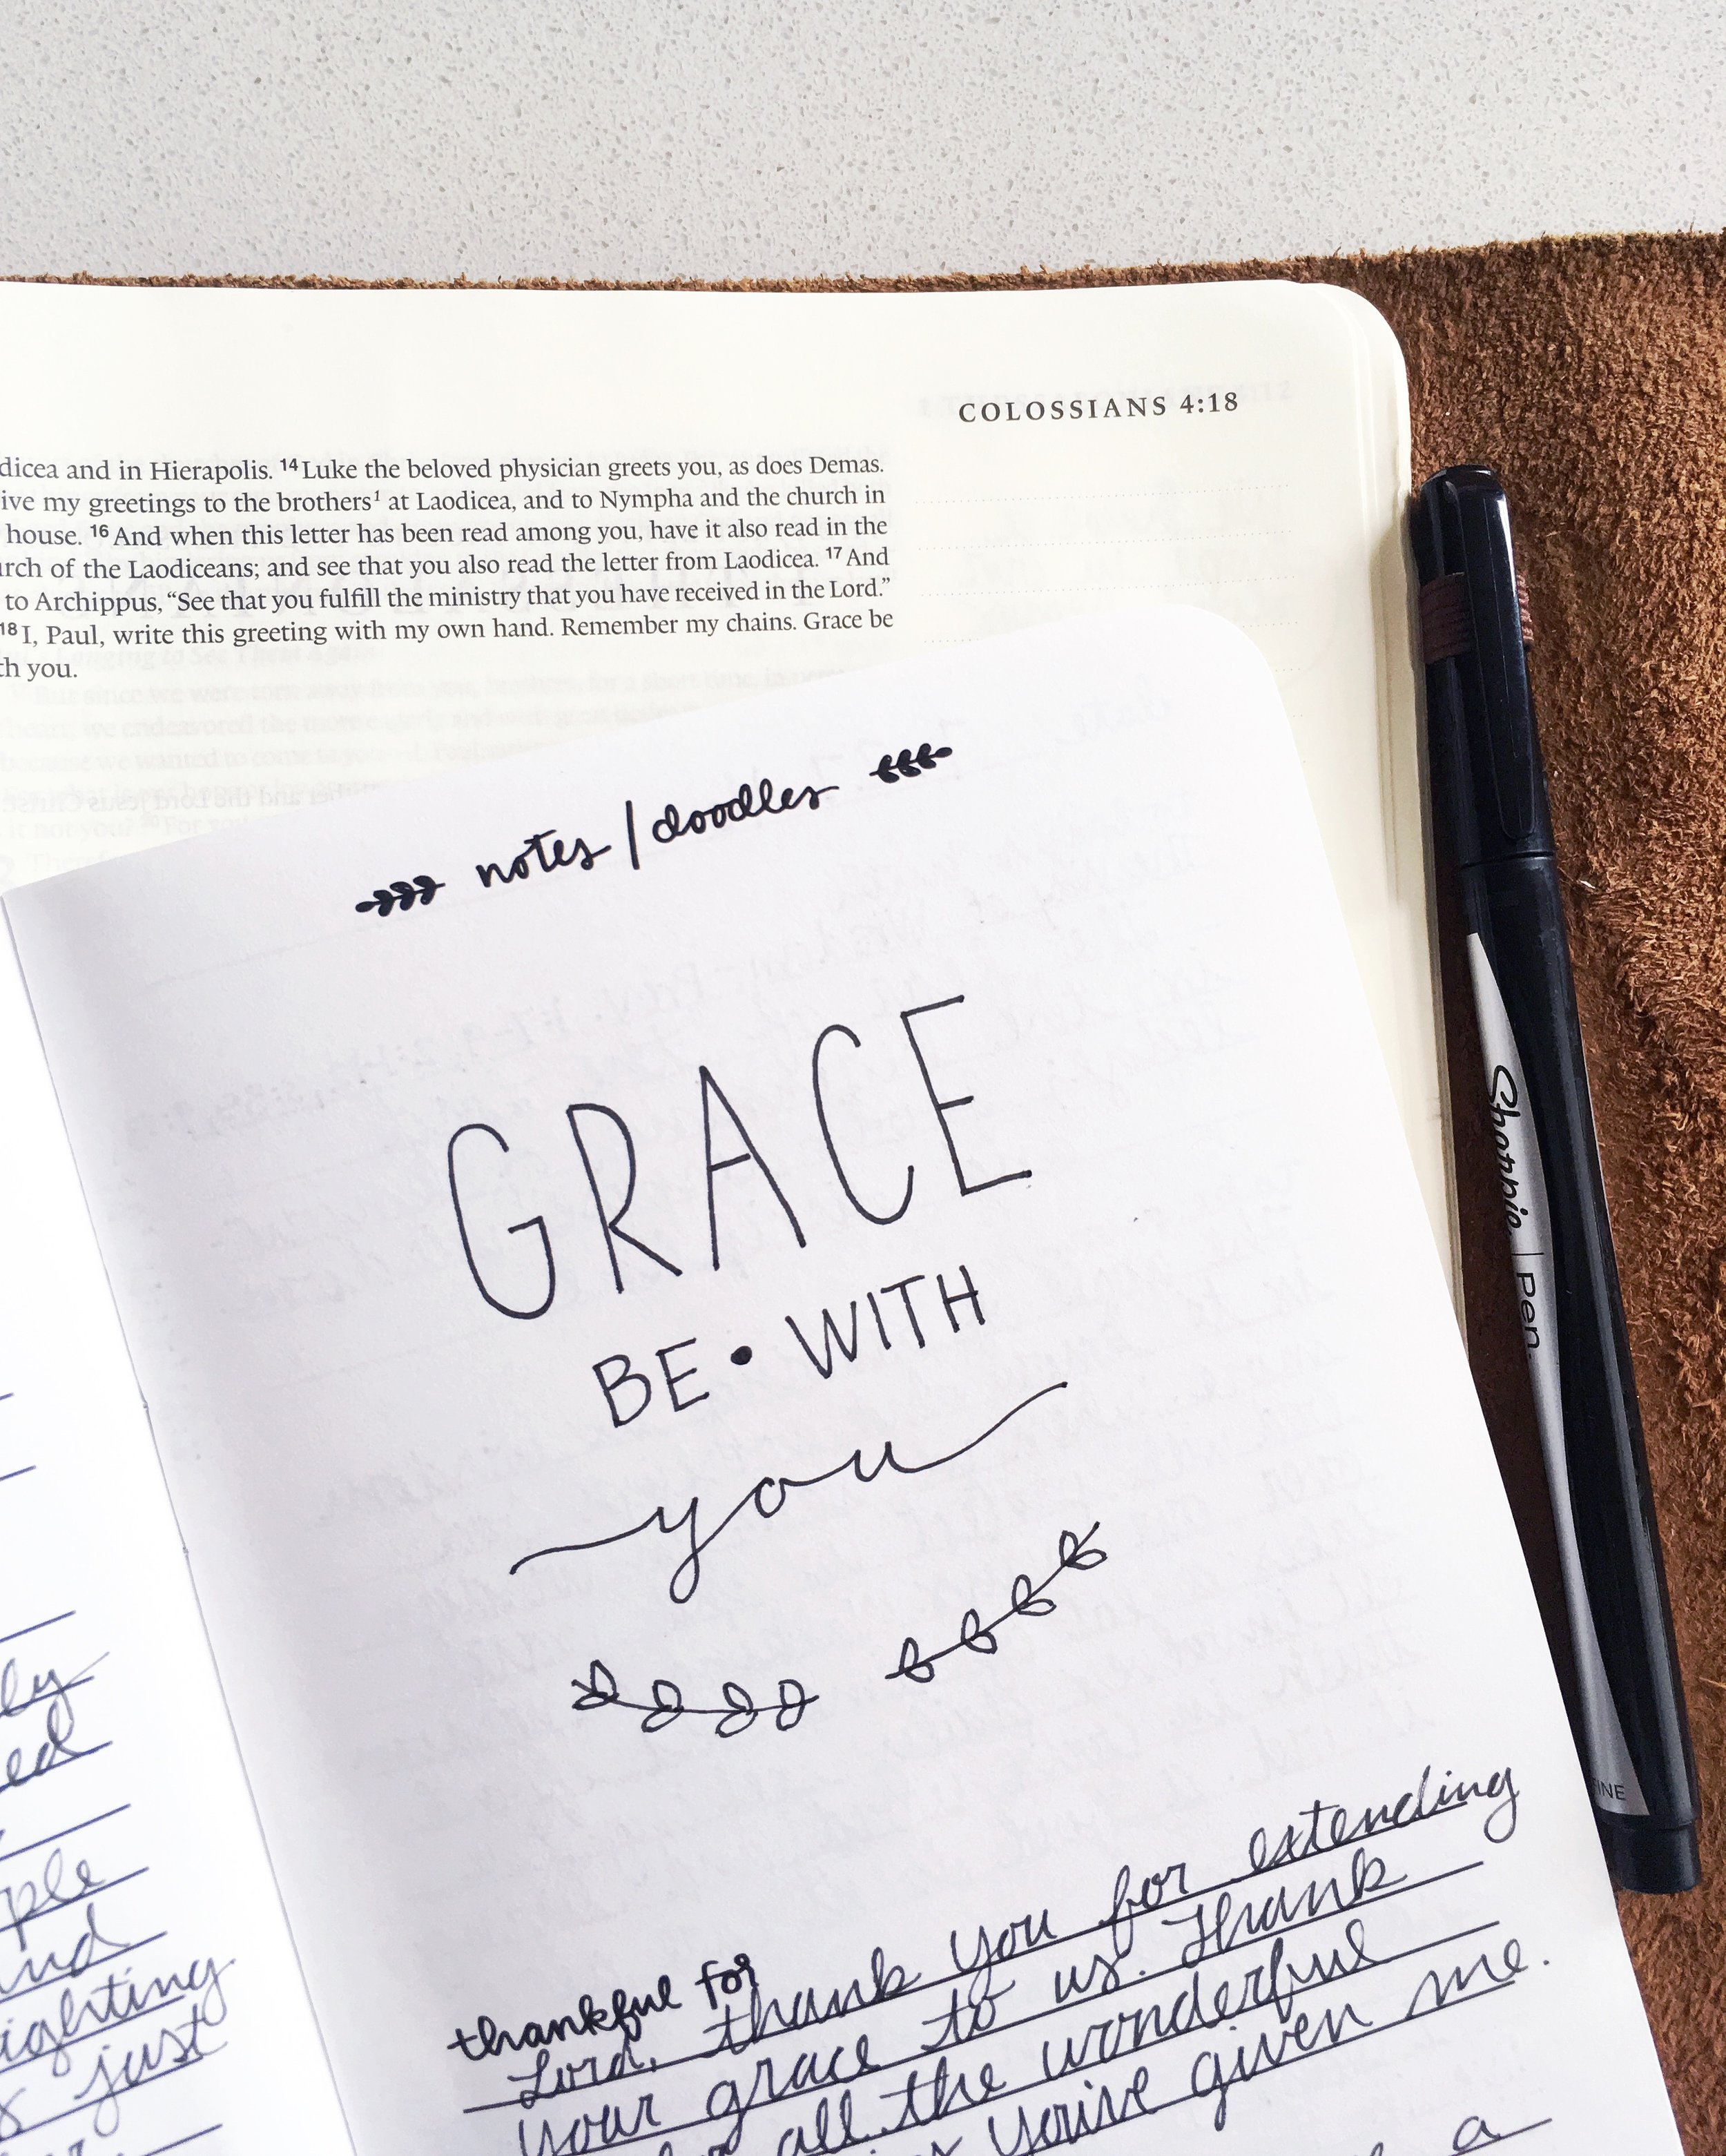 Dwell Deeply Doodle | Grace be with you | by Susanna Zach